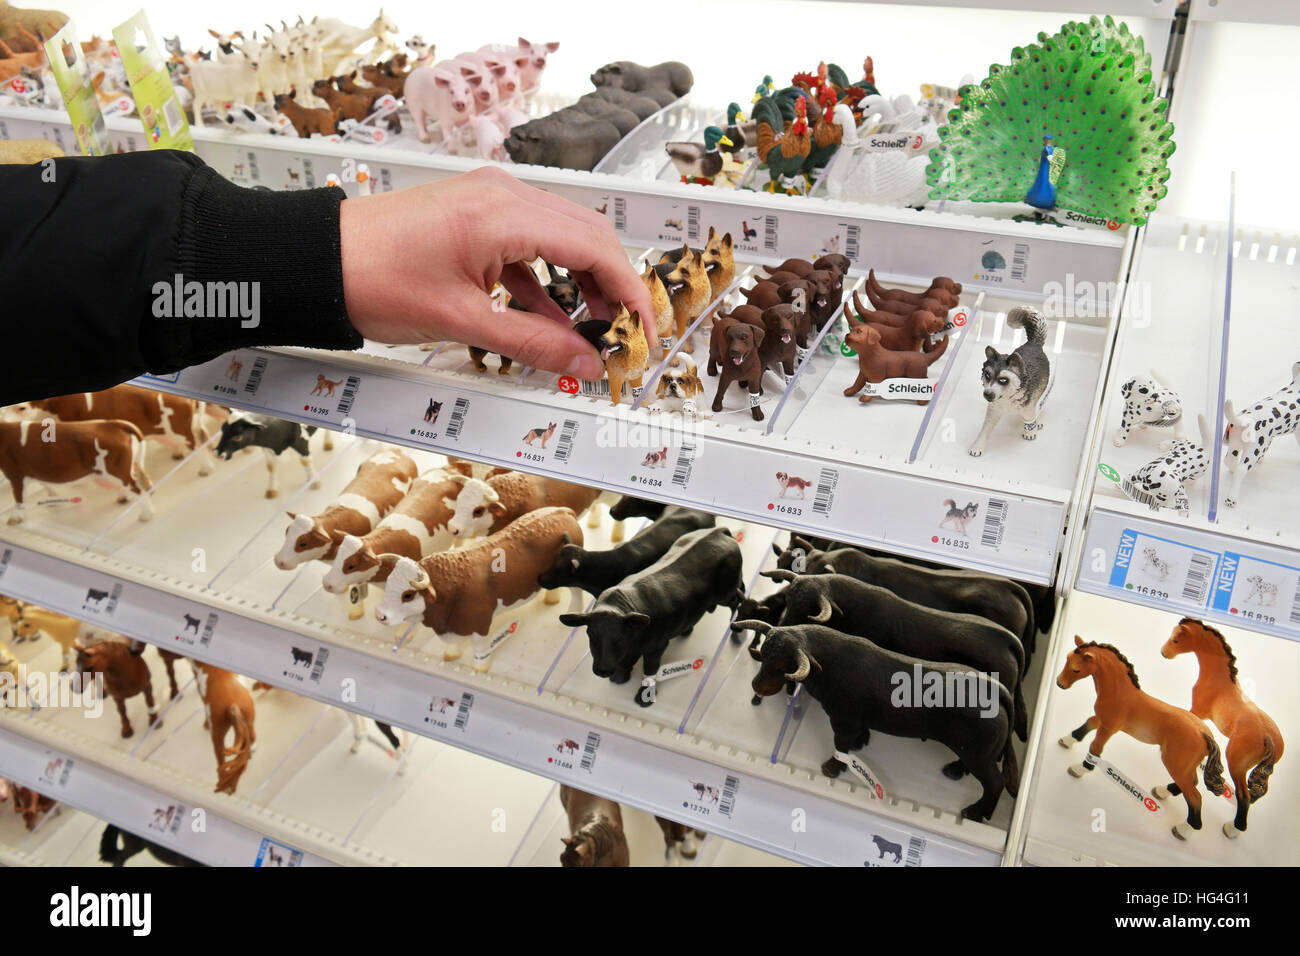 Schleich Animals Toys Plastic Figurines In A Display Stand In A